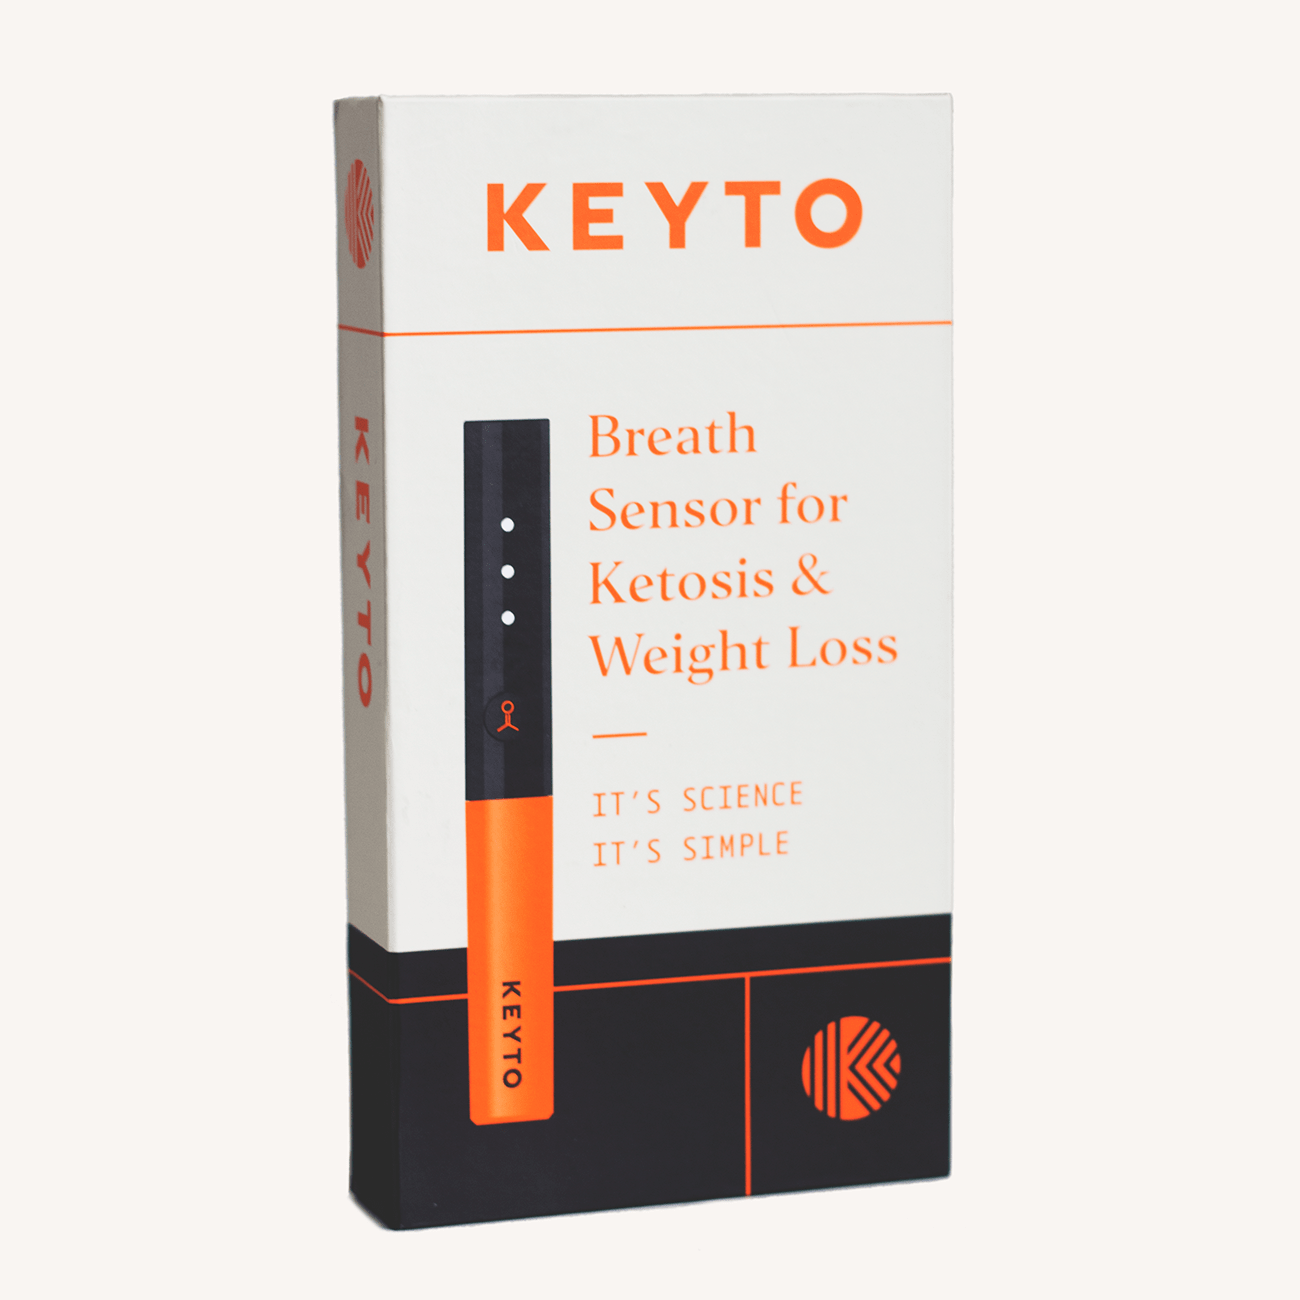 Keyto Breath Sensor - $10 / Month Membership (billed annually)